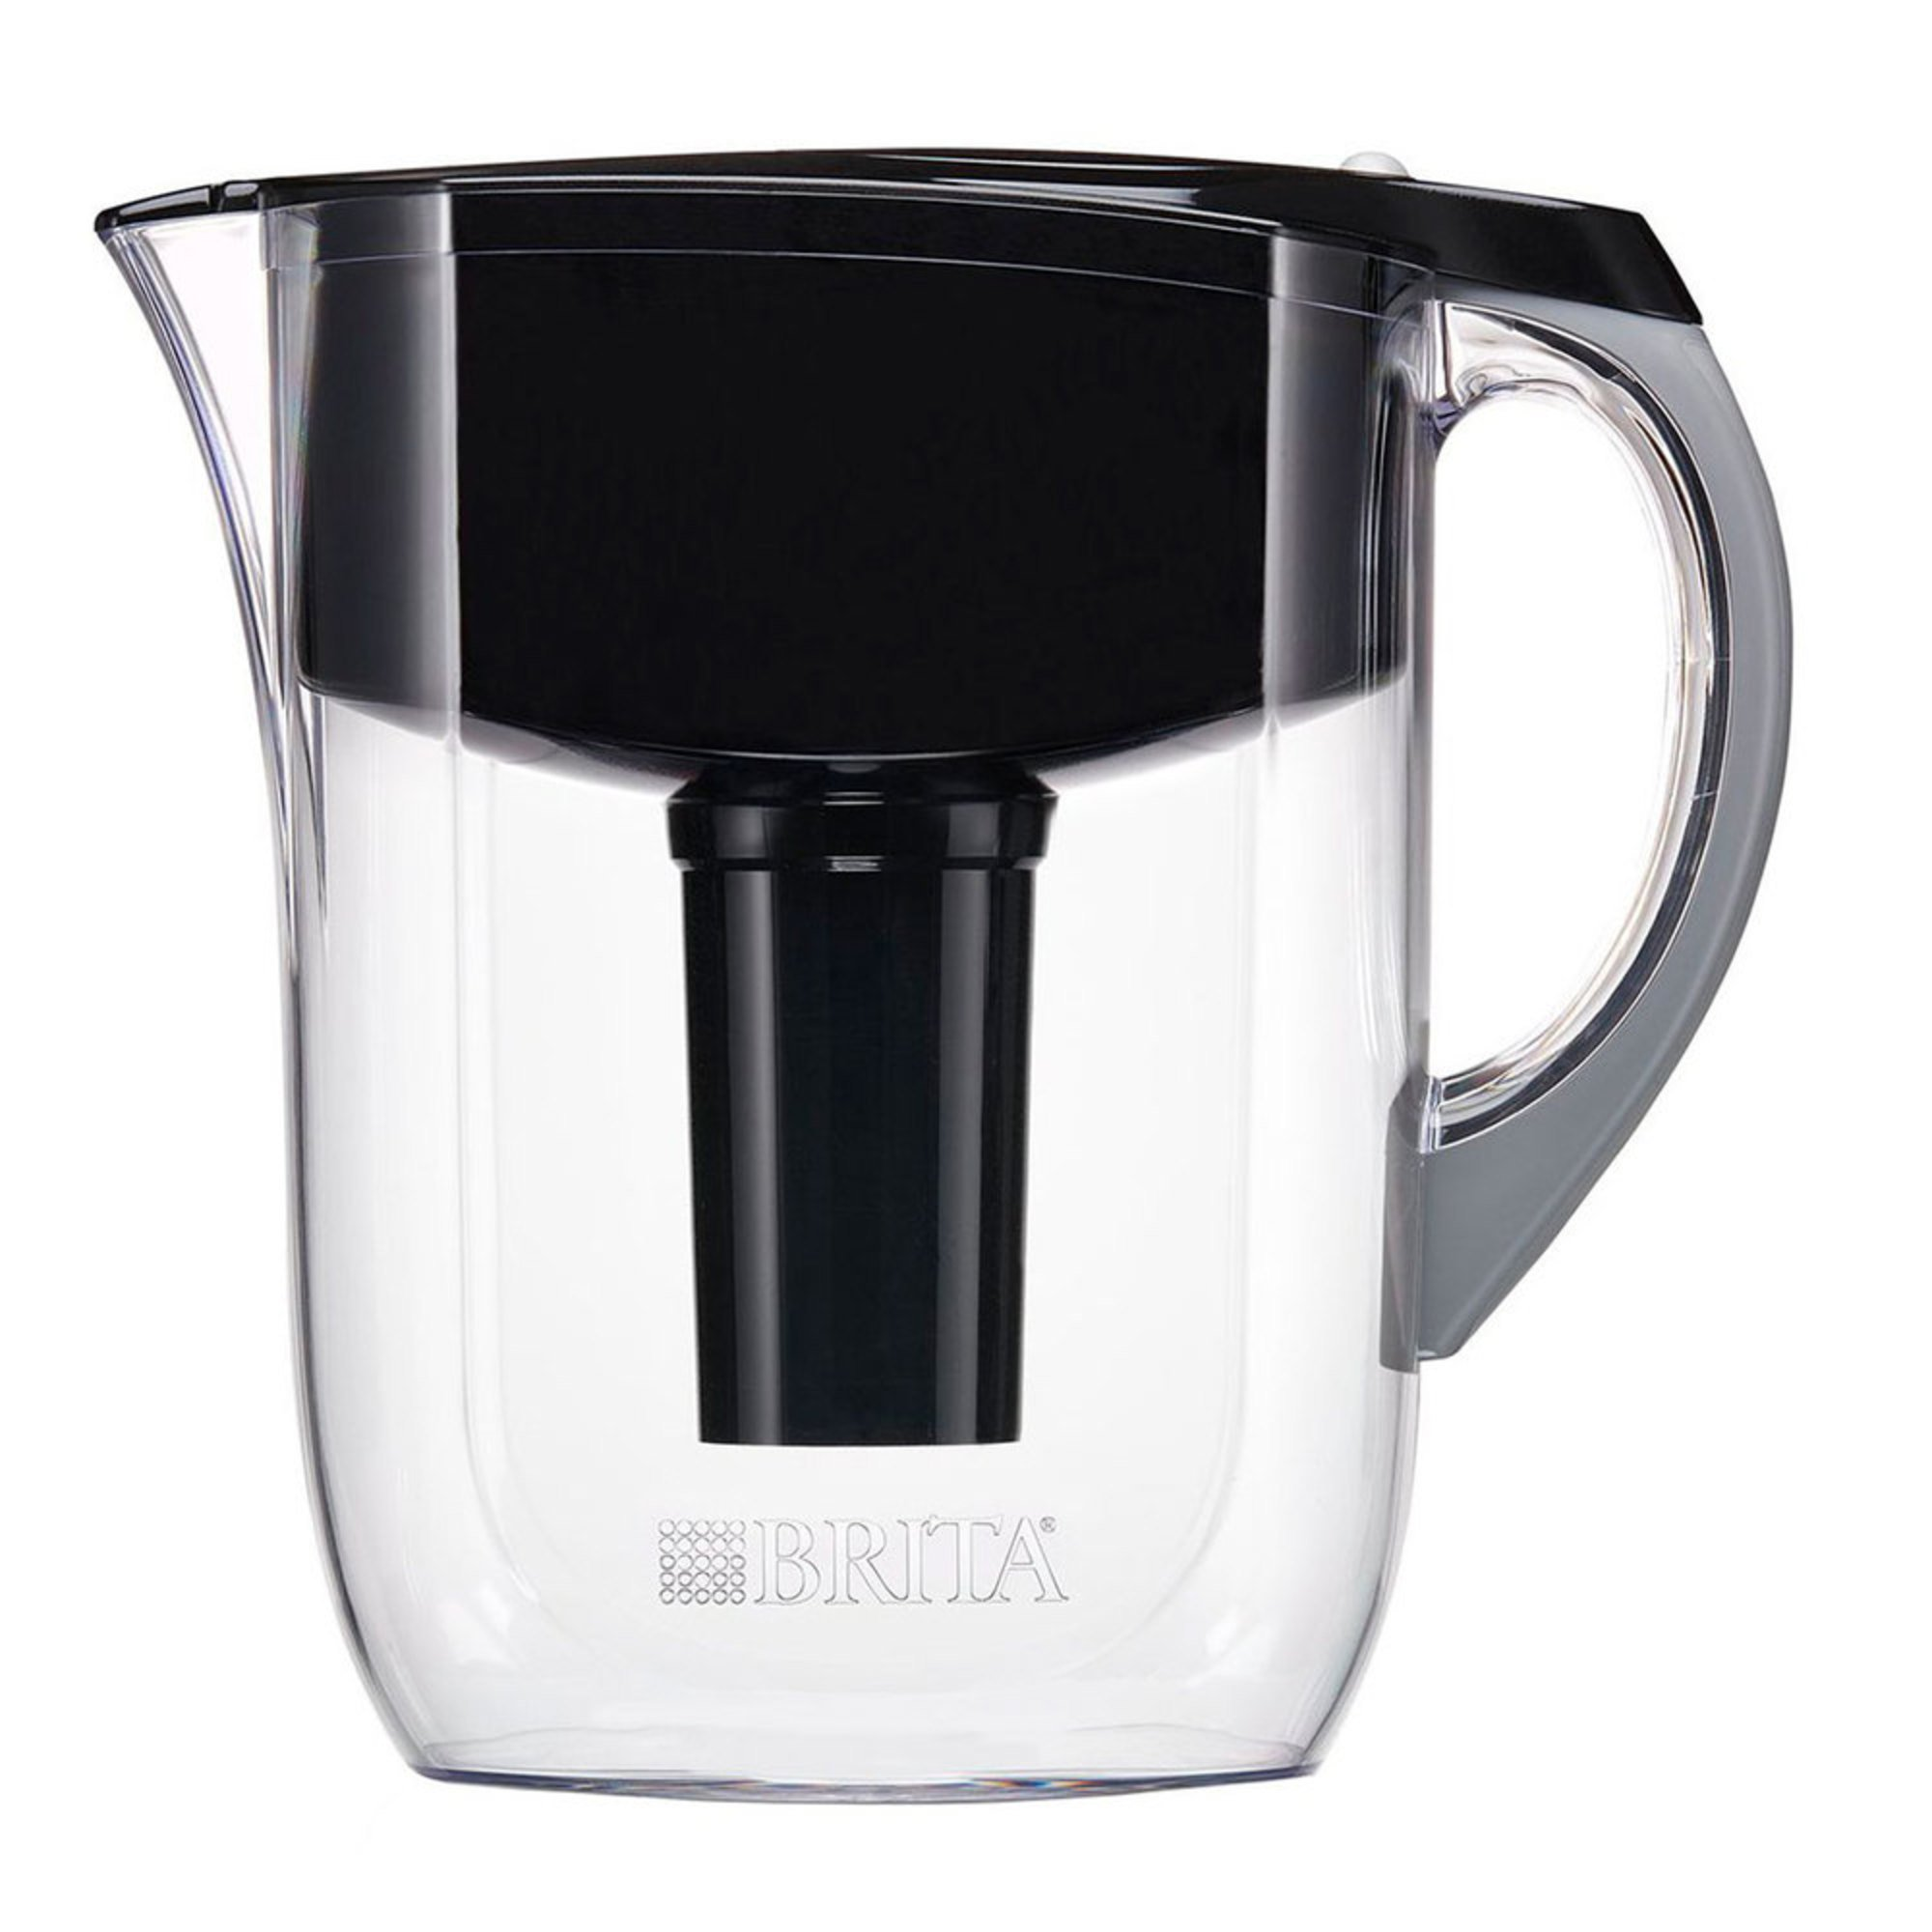 Brita 10-cup Grand Water Filter Pitcher (36058) | Water Purification ...